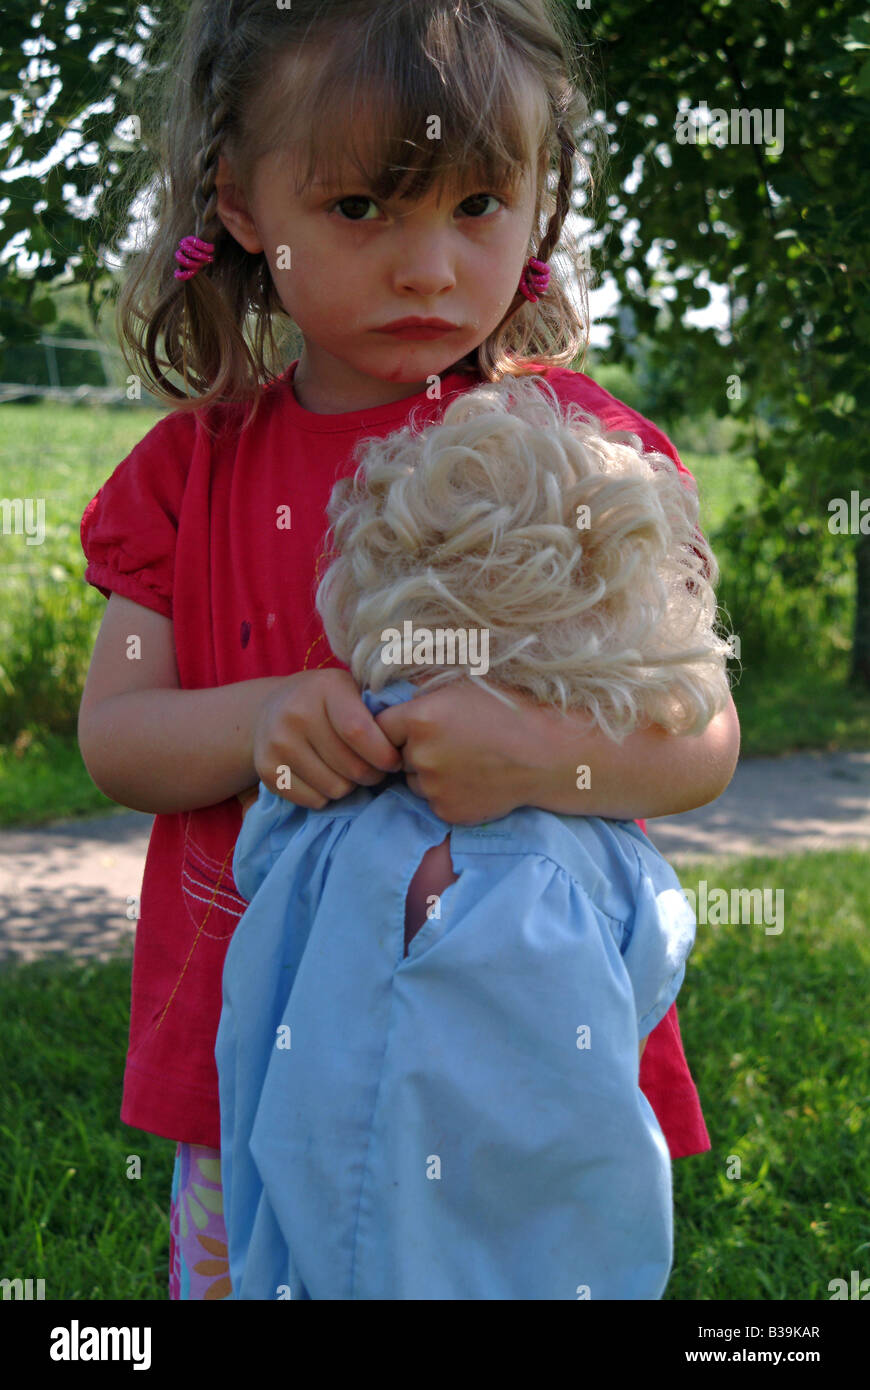 Little girl holding a doll looking unhappy - Stock Image